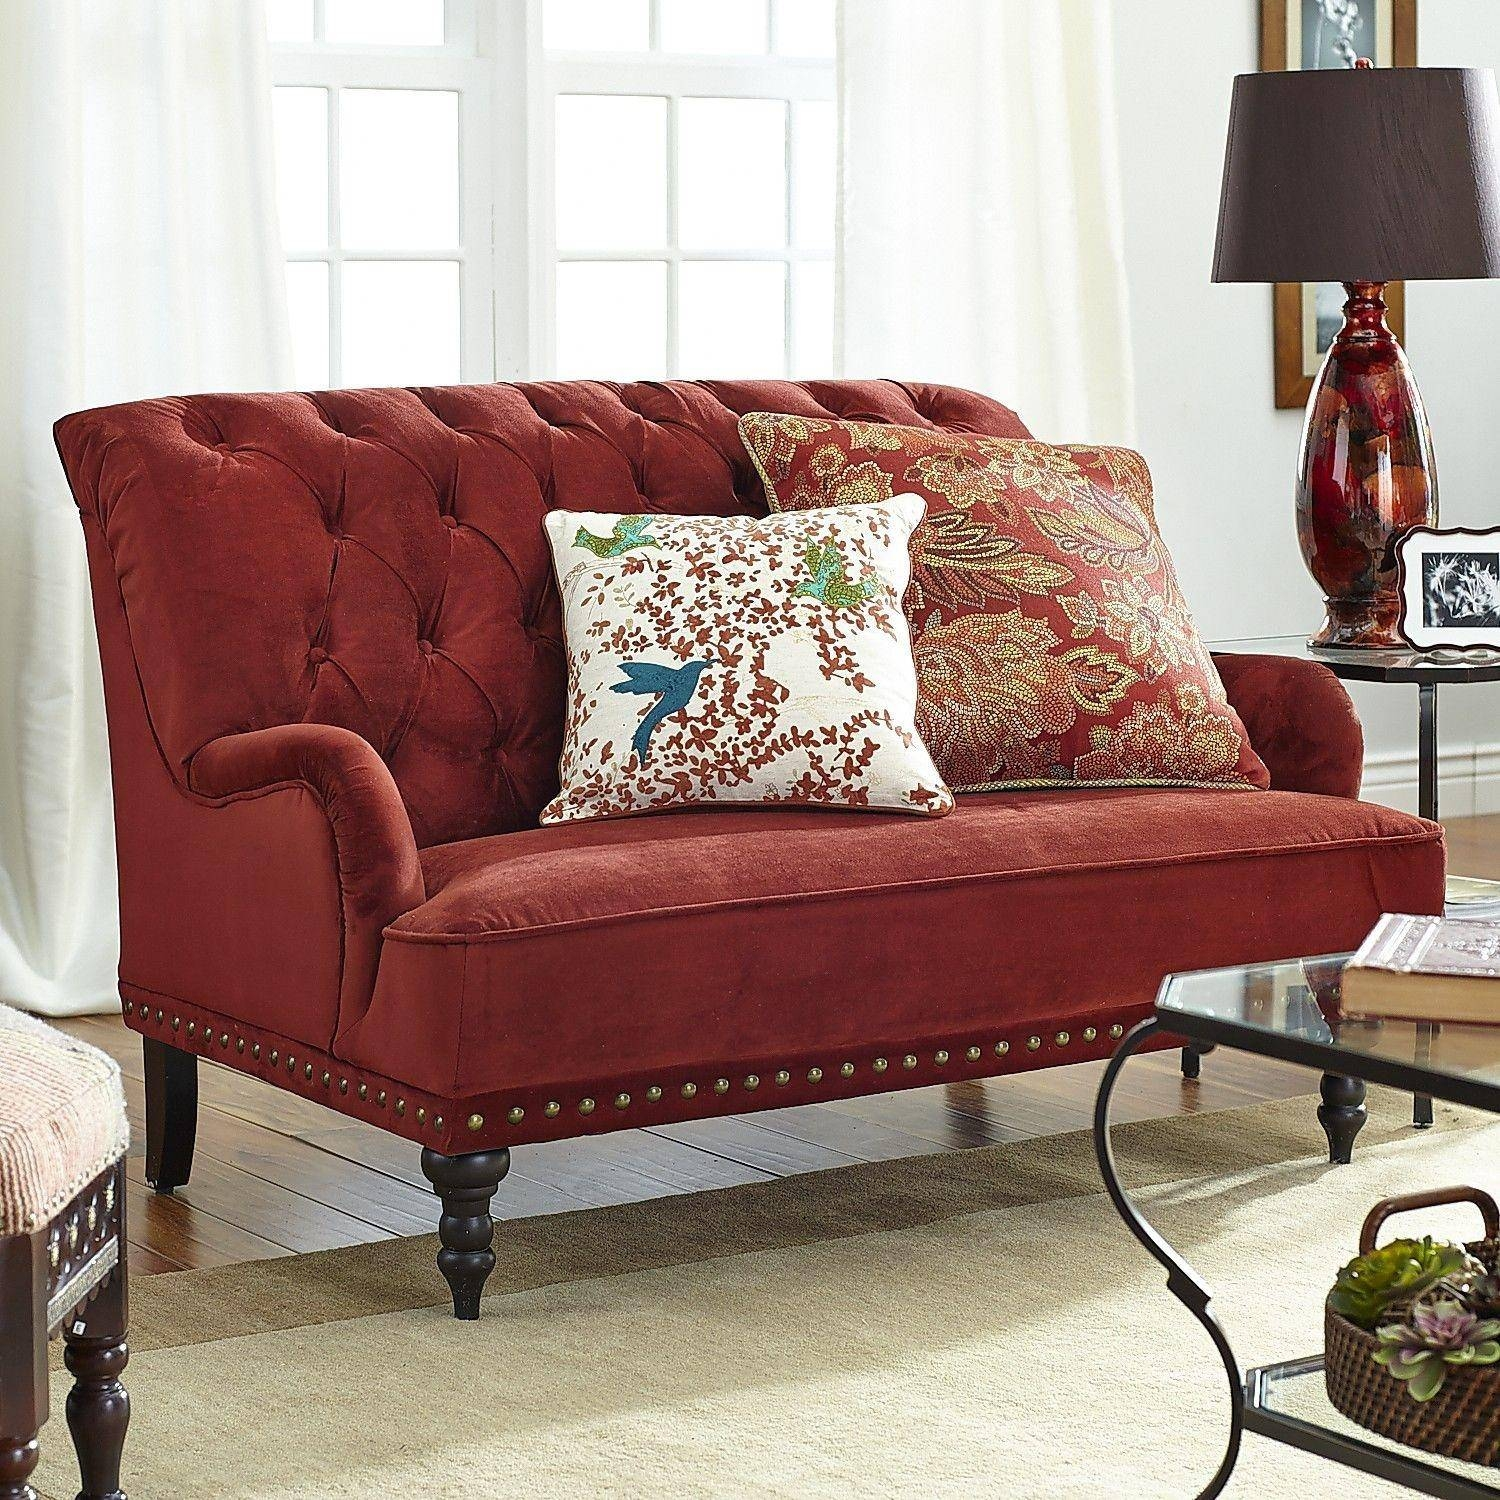 20+ Choices Of Pier 1 Sofa Beds | Sofa Ideas In Pier 1 Sofa Beds